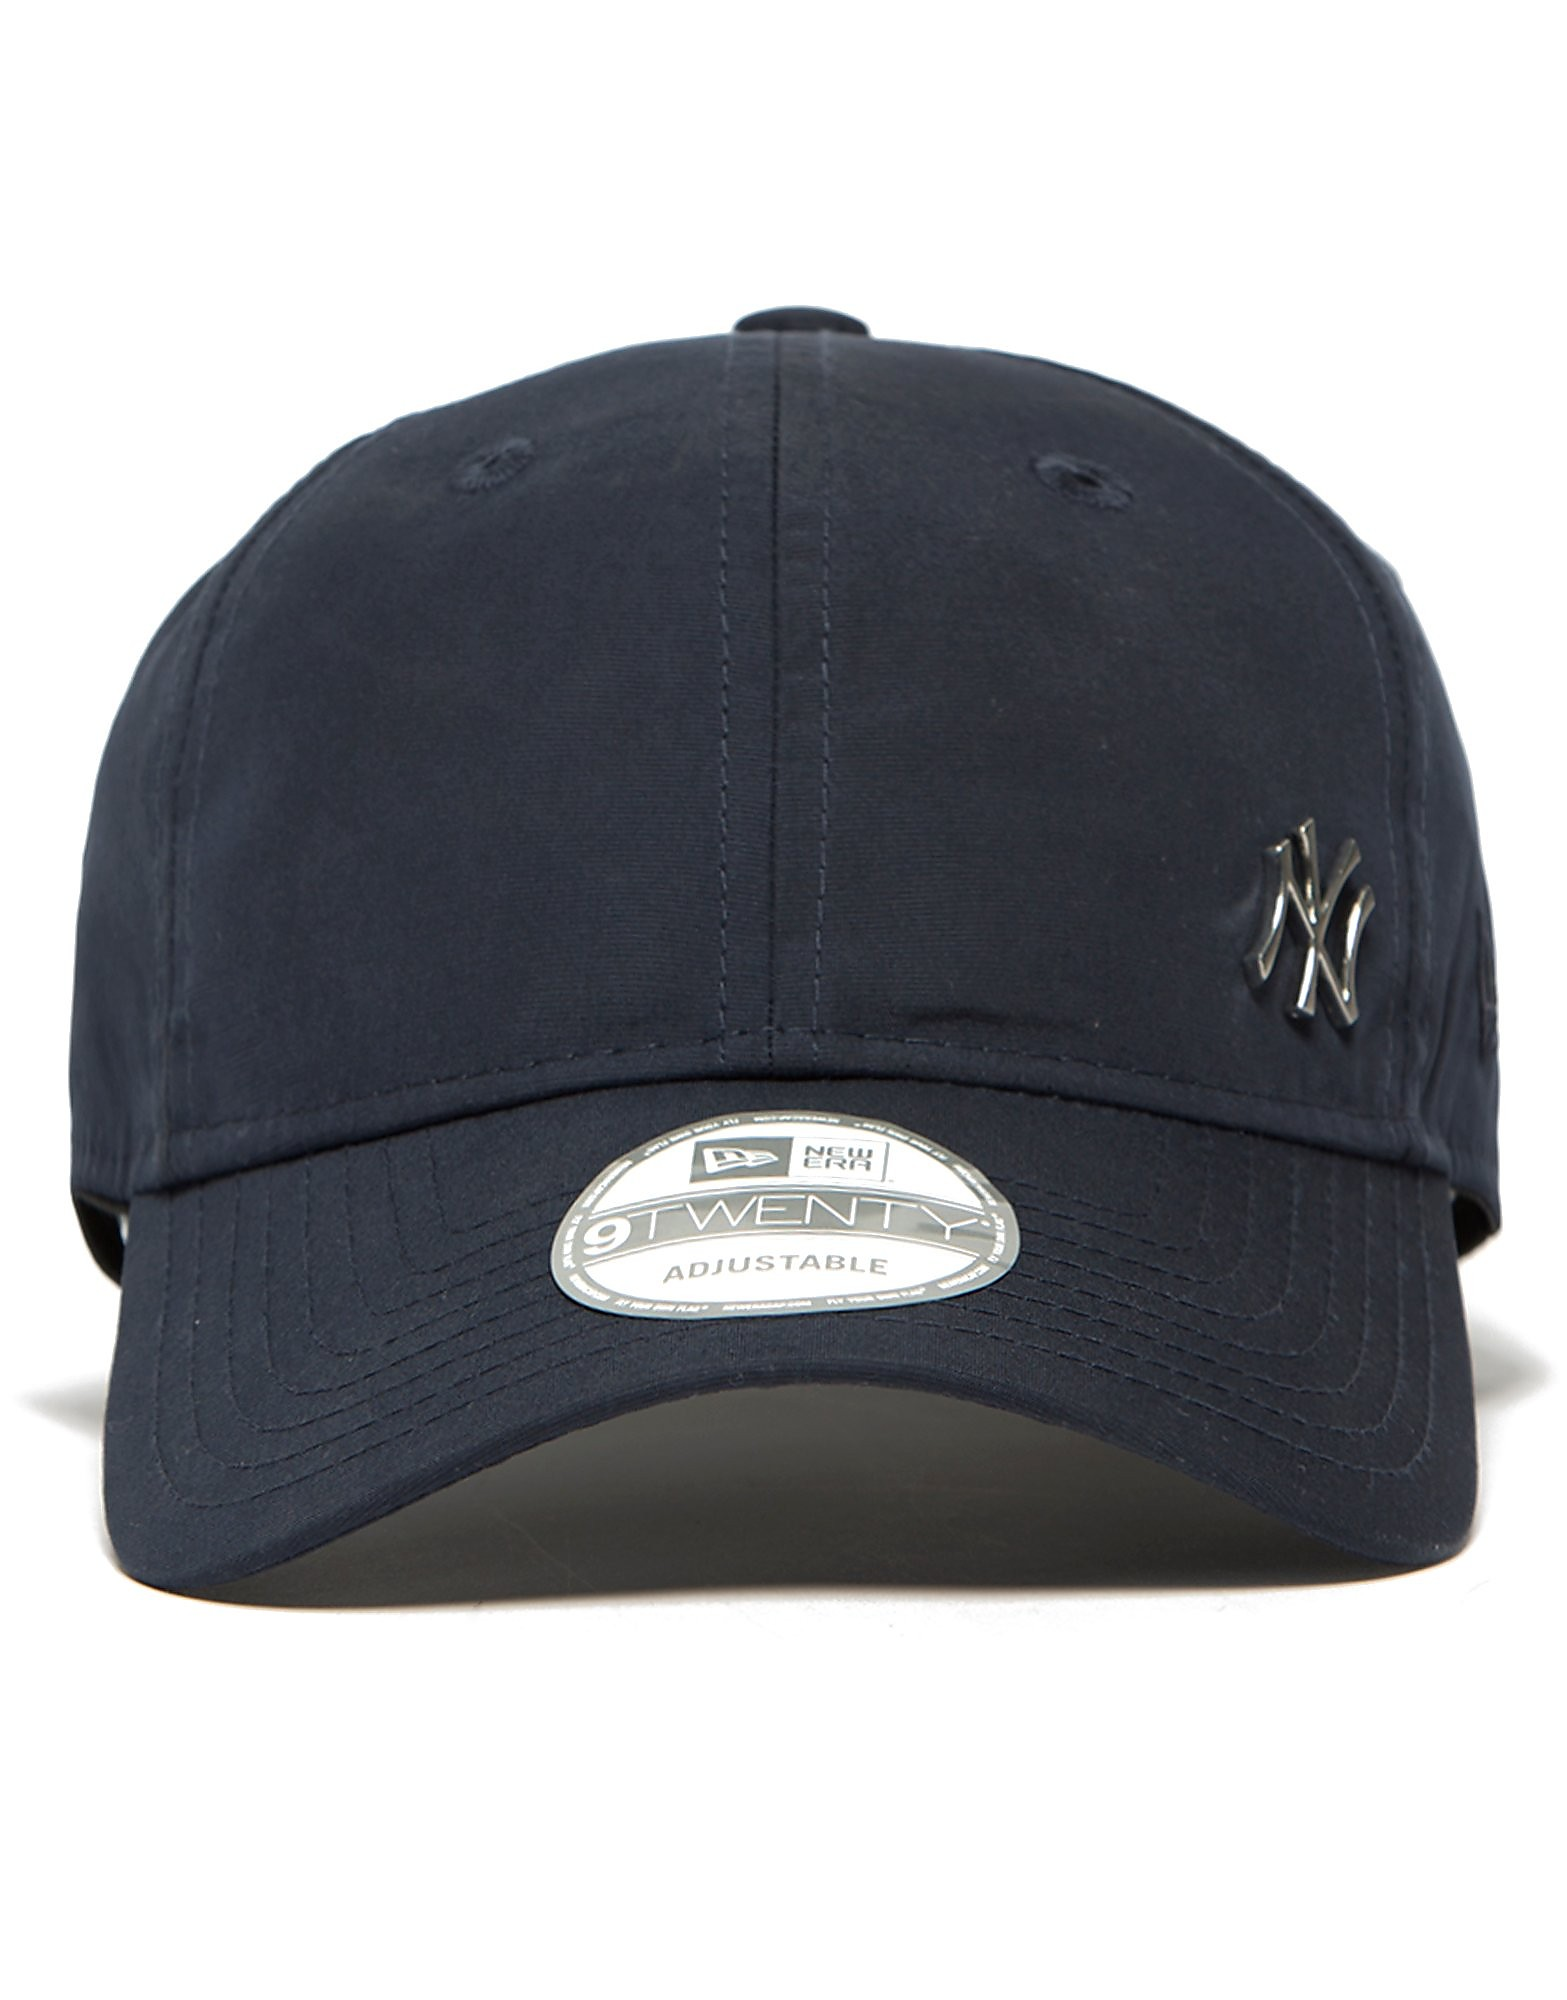 New Era 9Twenty New York Yankees Flawless Strapback Cap